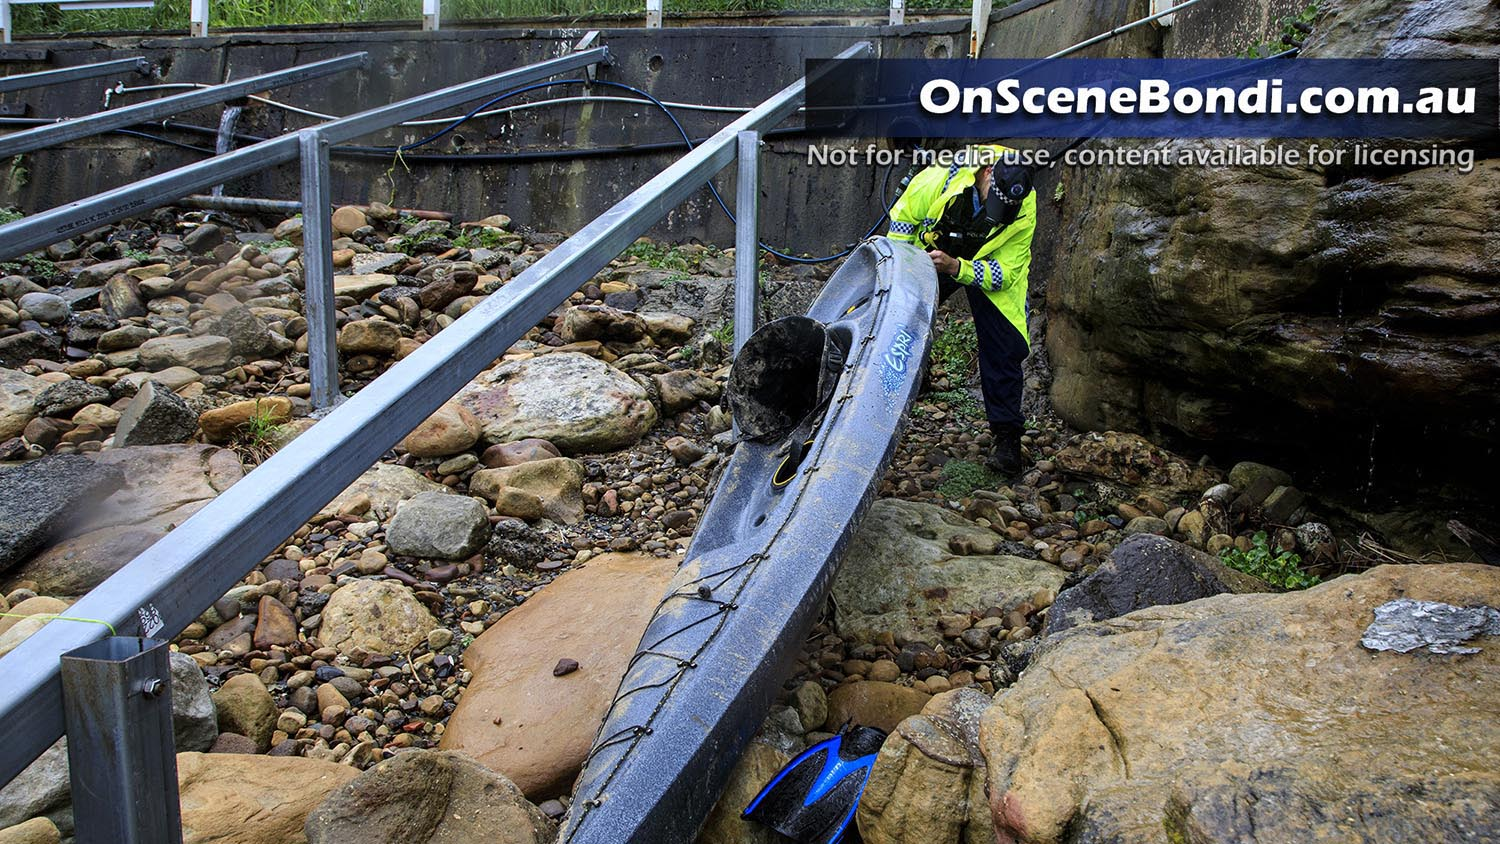 Major search operation initiated after Kayak found on rocks in Gordons Bay